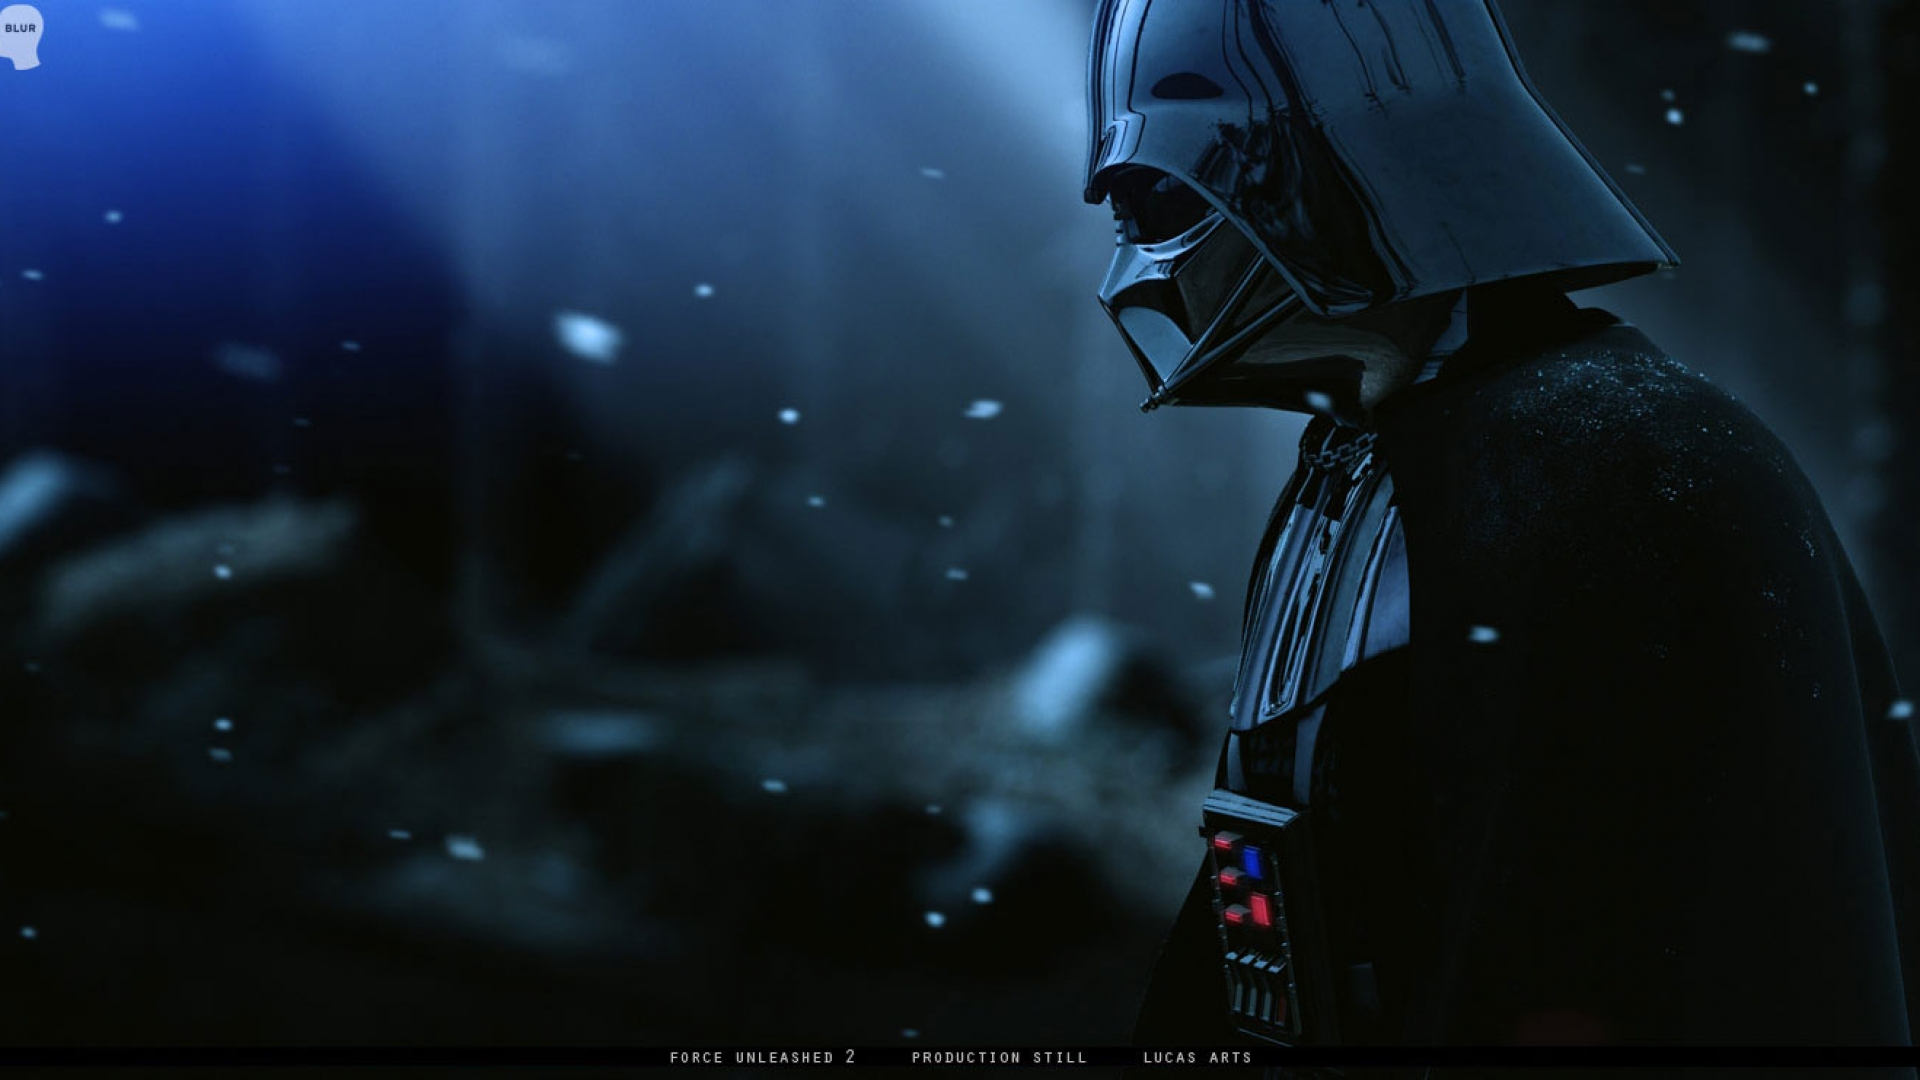 High Tech Ceiling Fan Darth Vader wallpaper 224694